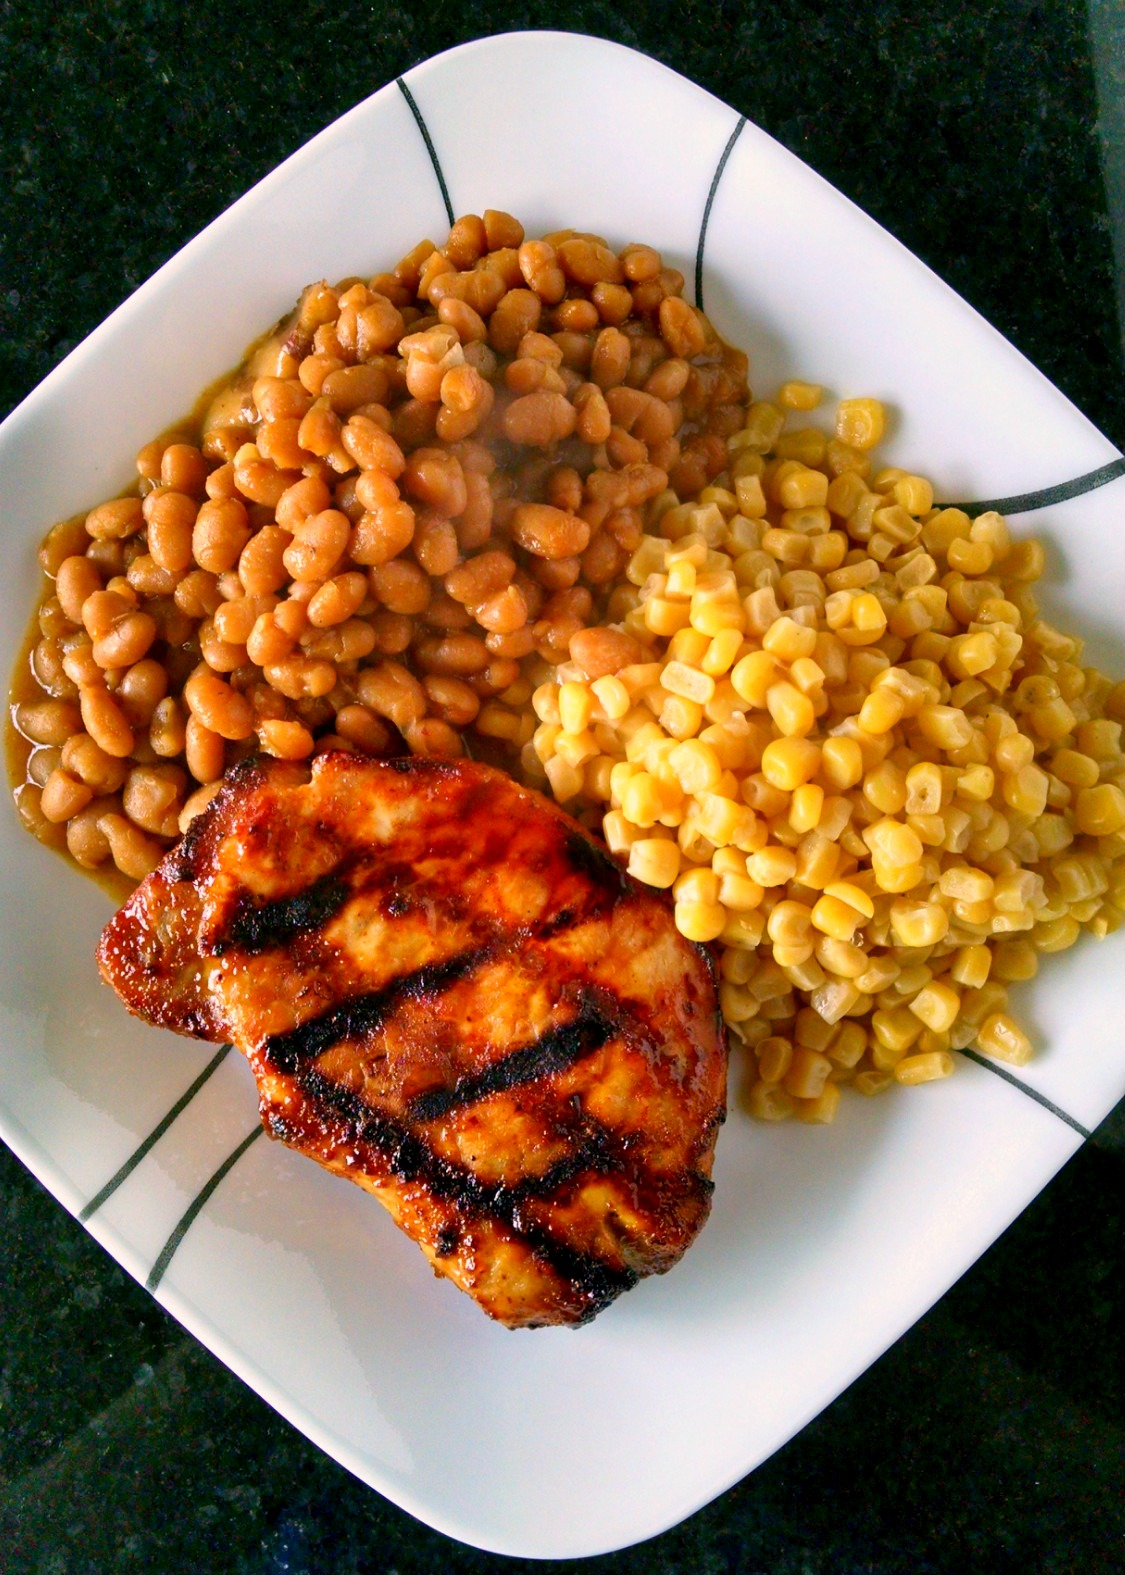 A Kitchen Hoors Adventures | Mustard Barbecue Chops - A twist on traditional barbecue sauce, this one replaces the tomato products with mustard.